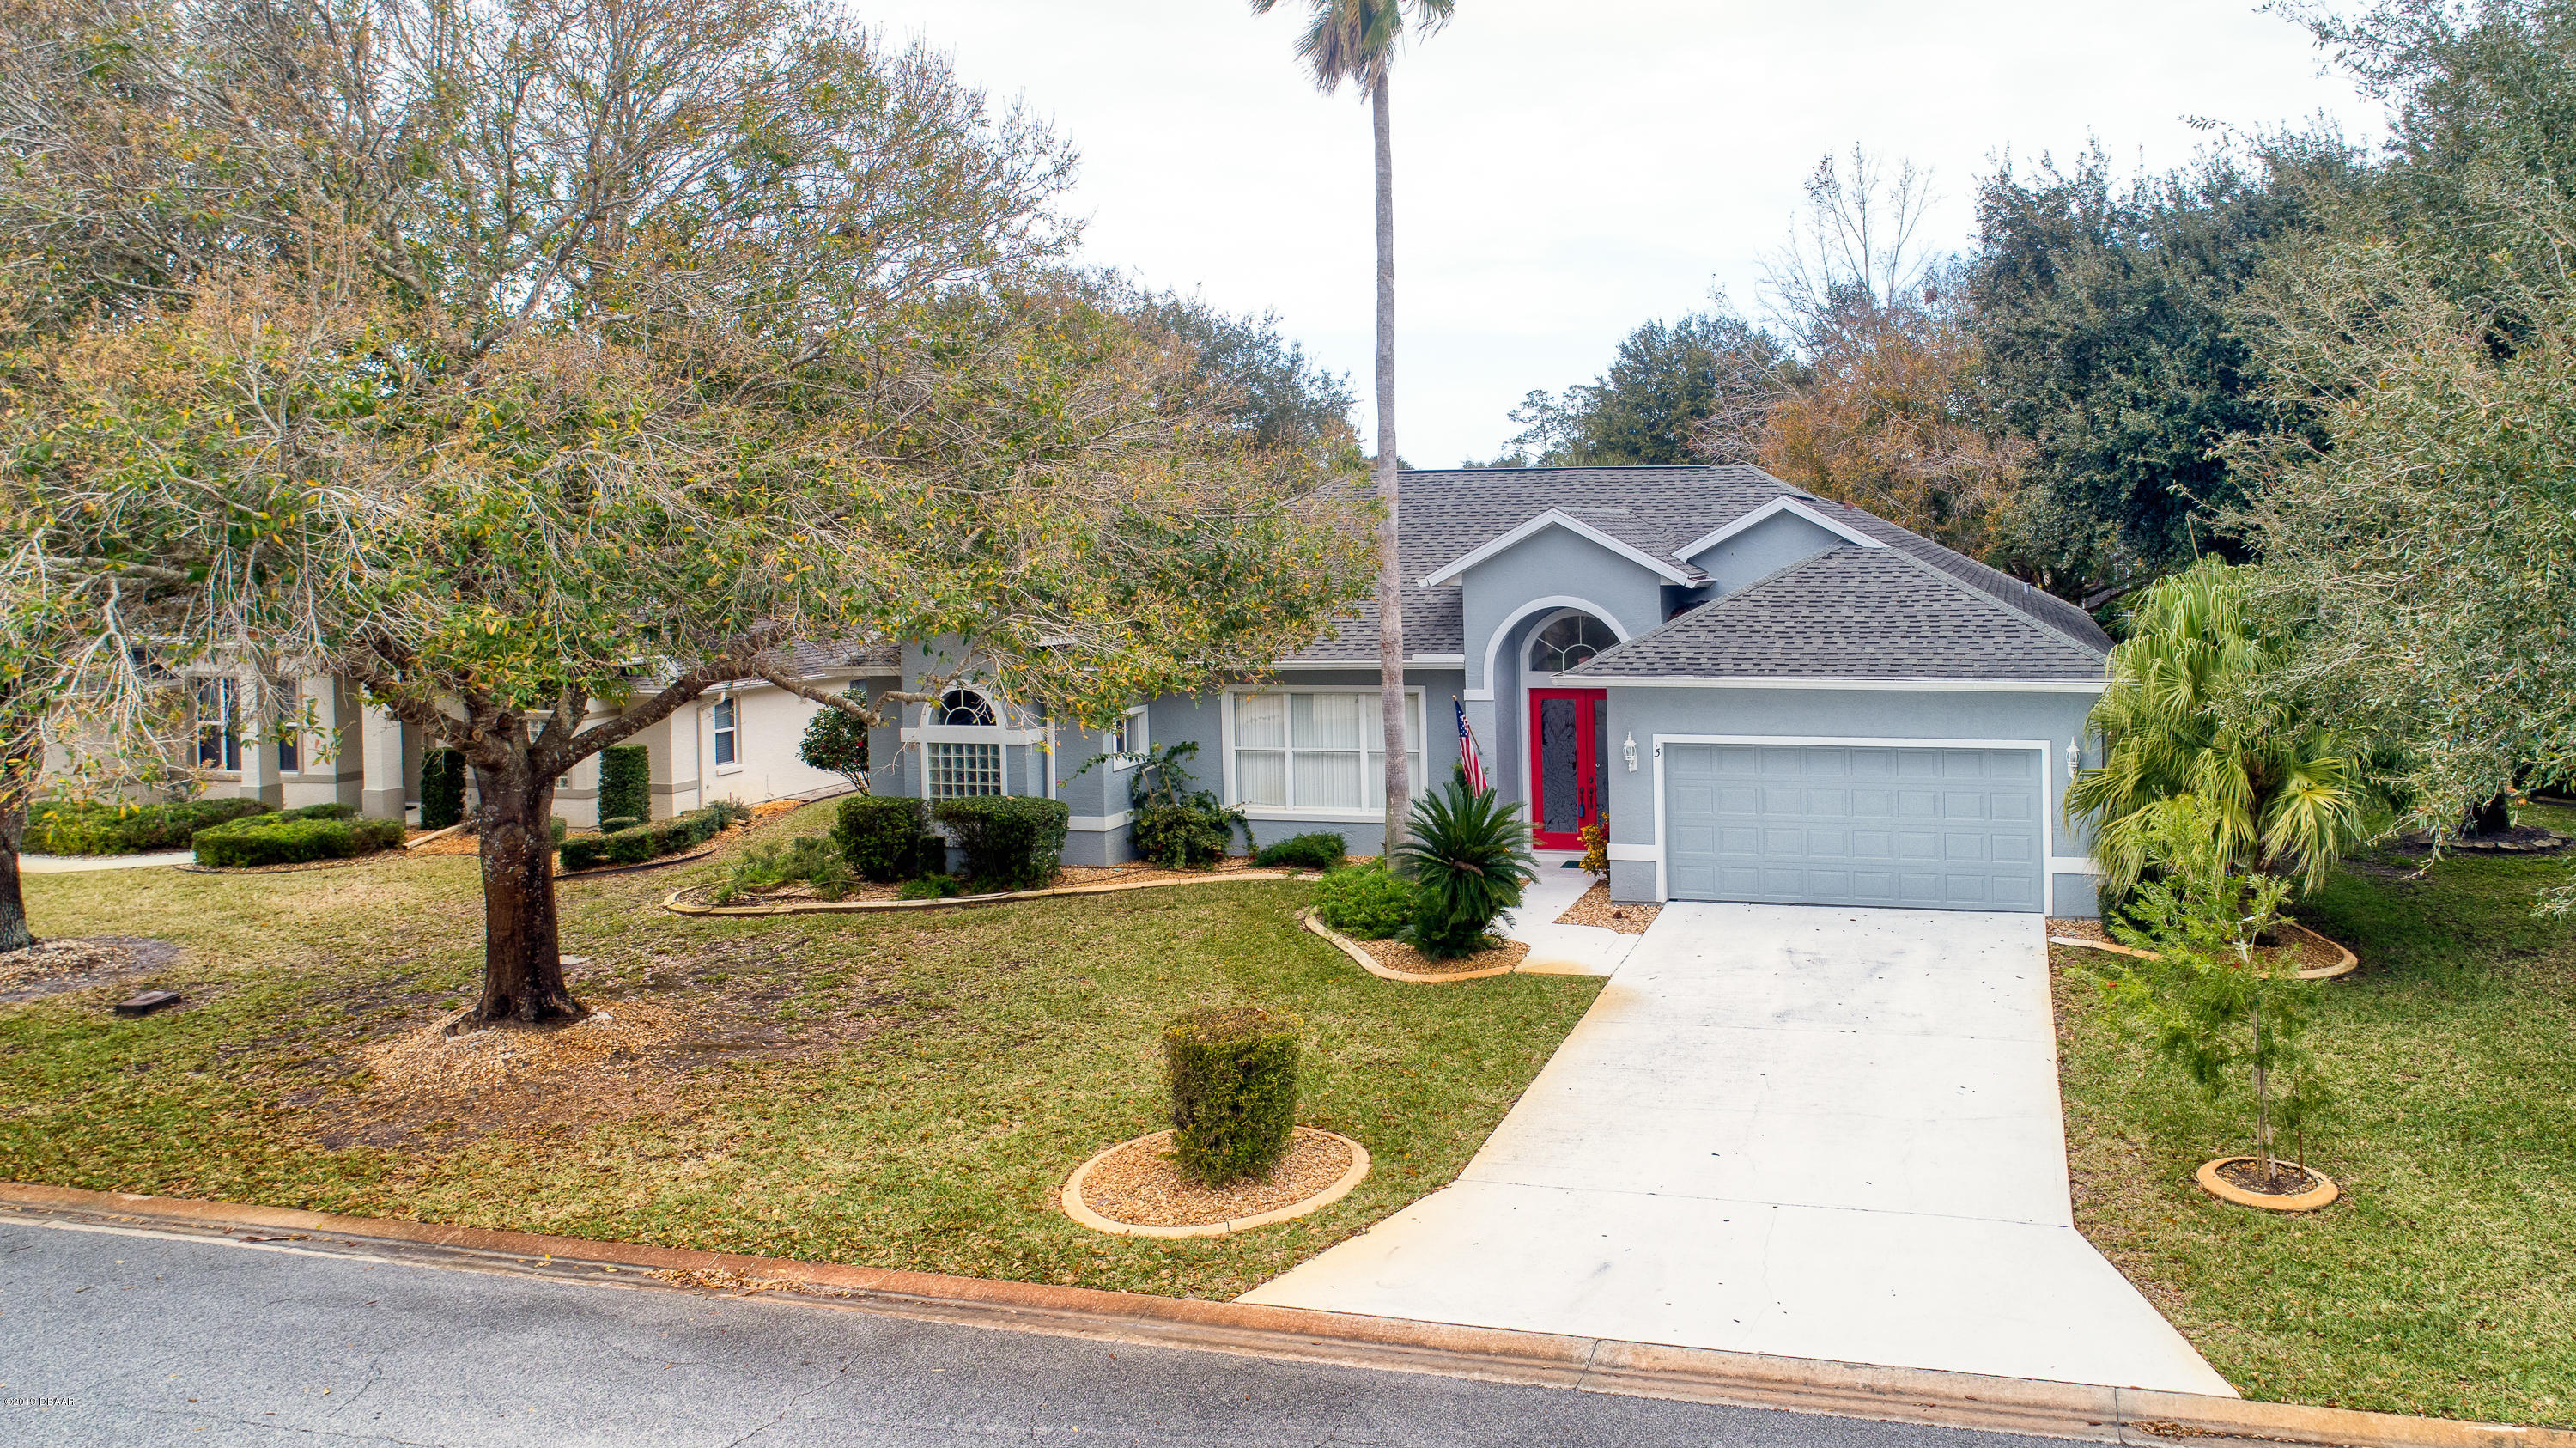 15  Meadow Brooke Lane, Ormond Beach, Florida